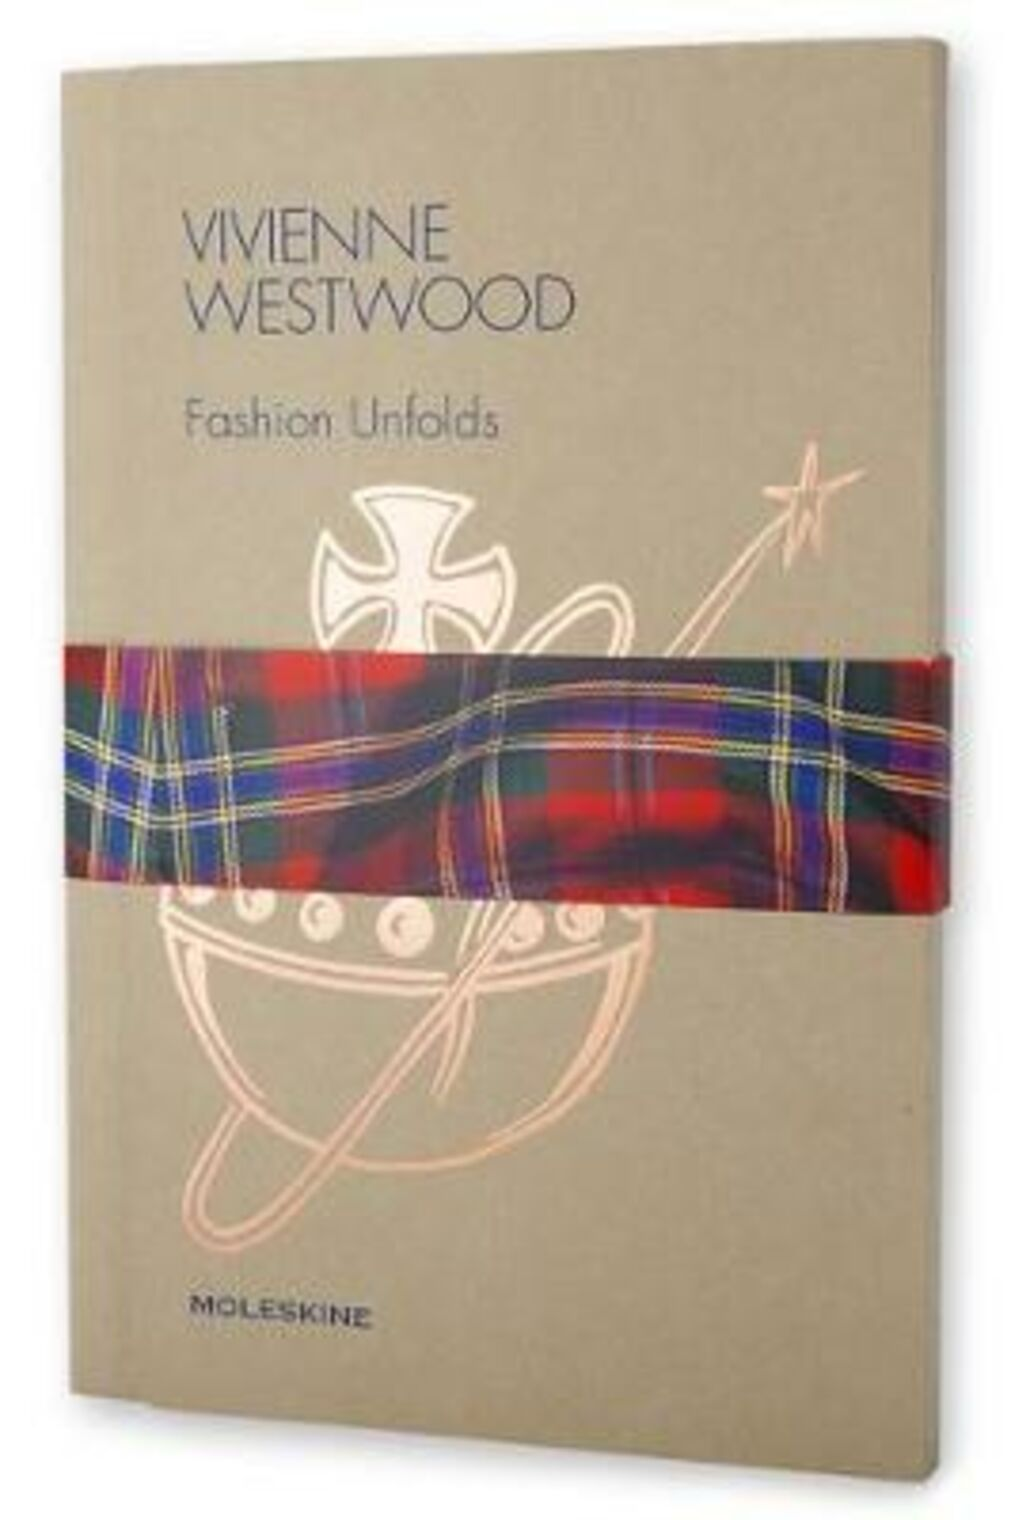 Vivienne Westwood. Fashion unfolds